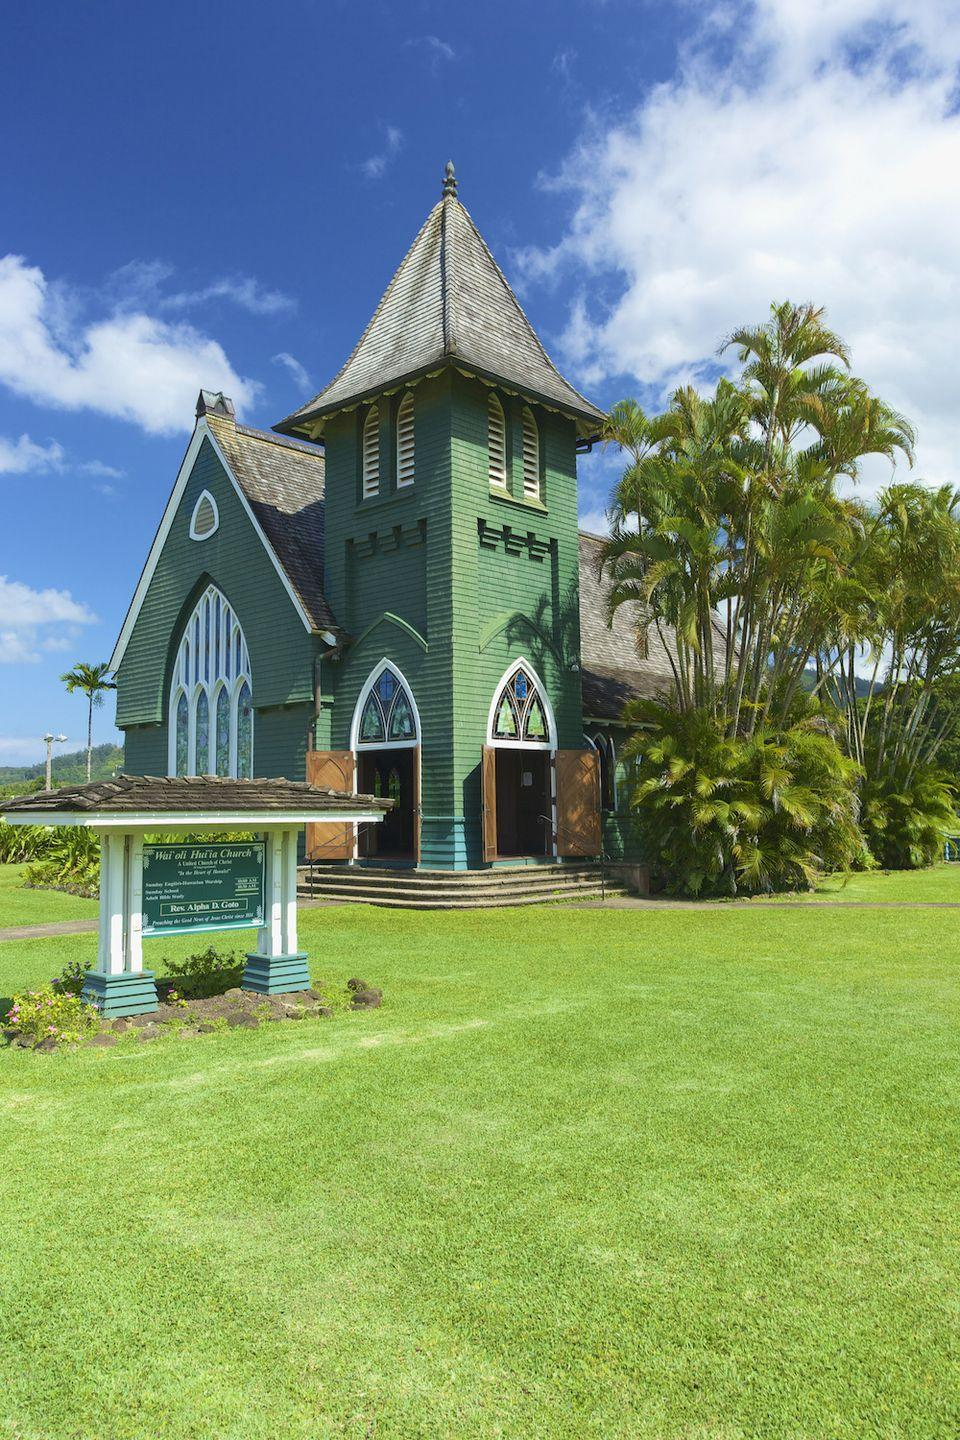 """<p>Hanalei is another town on our list that has a famous pop culture connection: Its bridge was featured in <a href=""""http://www.aloha-hawaii.com/kauai/destinations/north-shore/hanalei/"""" rel=""""nofollow noopener"""" target=""""_blank"""" data-ylk=""""slk:South Pacific"""" class=""""link rapid-noclick-resp""""><em>South Pacific</em></a>. The buildings and scenery are as gorgeous as you'd expect in Hawaii, too. It's also a town where you can fulfill your fantasy of opening a gallery, surf shop, or restaurant, with a steady stream of visitors looking to take in the picture-perfect landscape.</p><p><a href=""""https://www.housebeautiful.com/lifestyle/news/a8340/hgtv-casting-love-yurts/"""" rel=""""nofollow noopener"""" target=""""_blank"""" data-ylk=""""slk:Here's how you can live in a yurt in Hawaii »"""" class=""""link rapid-noclick-resp""""><em>Here's how you can live in a yurt in Hawaii »</em></a></p>"""